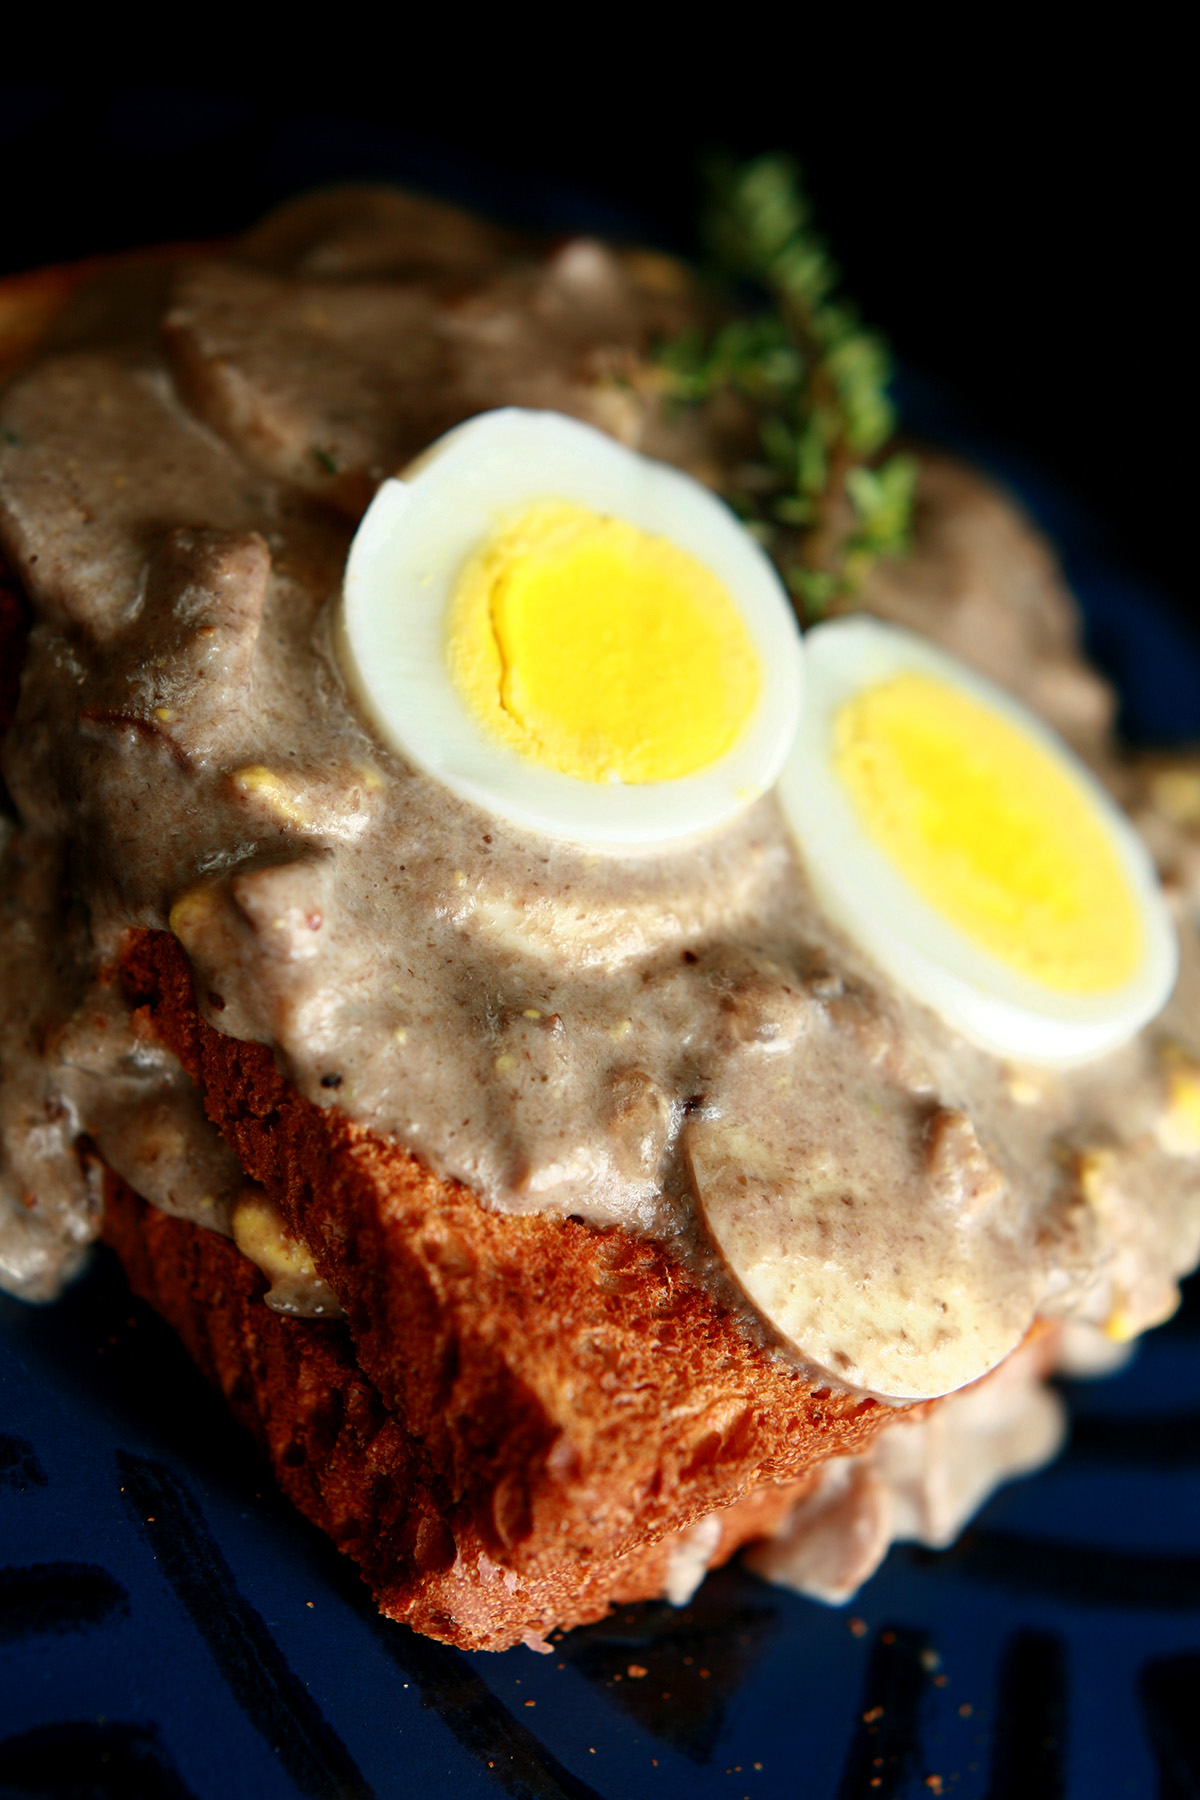 Gluten-Free Mushroom Soup and Eggs on Toast, garnished with hardboiled egg slices and thyme.